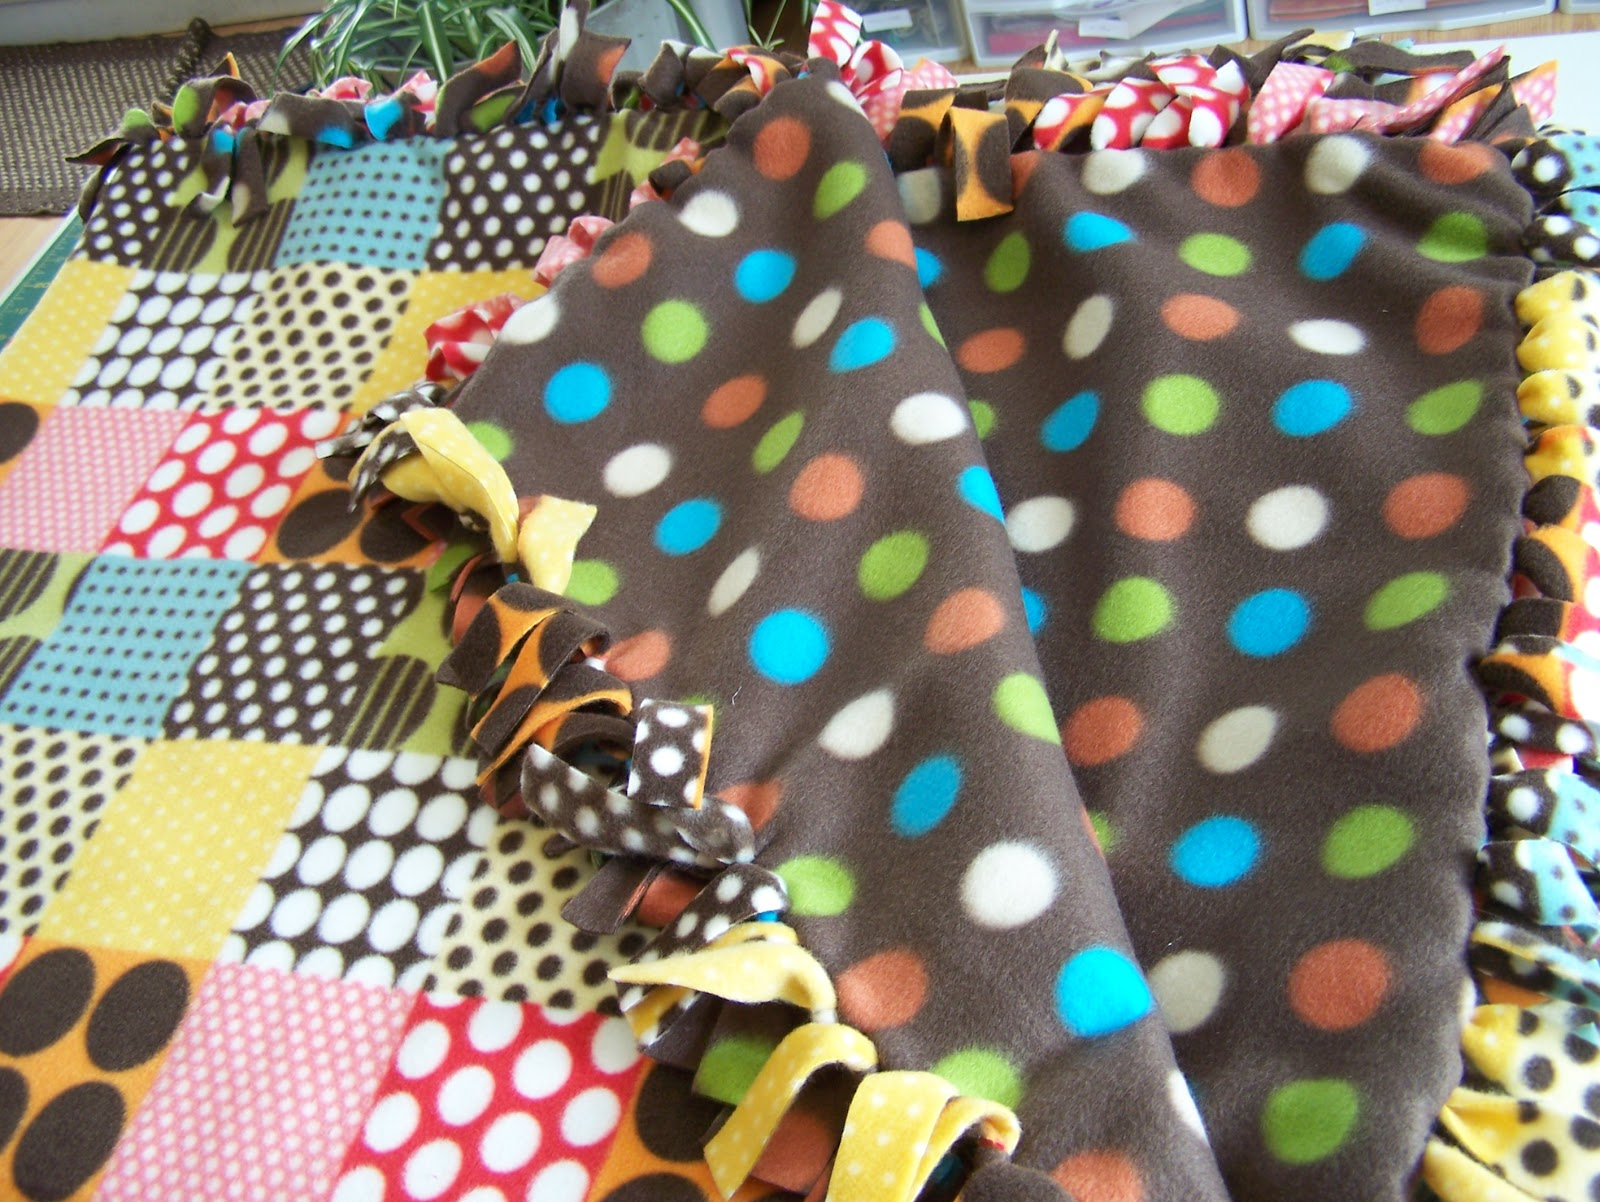 How to make a no sew tie blanket daily dish magazine recipes how to make a no sew tie blanket daily dish magazine recipes travel crafts ccuart Images